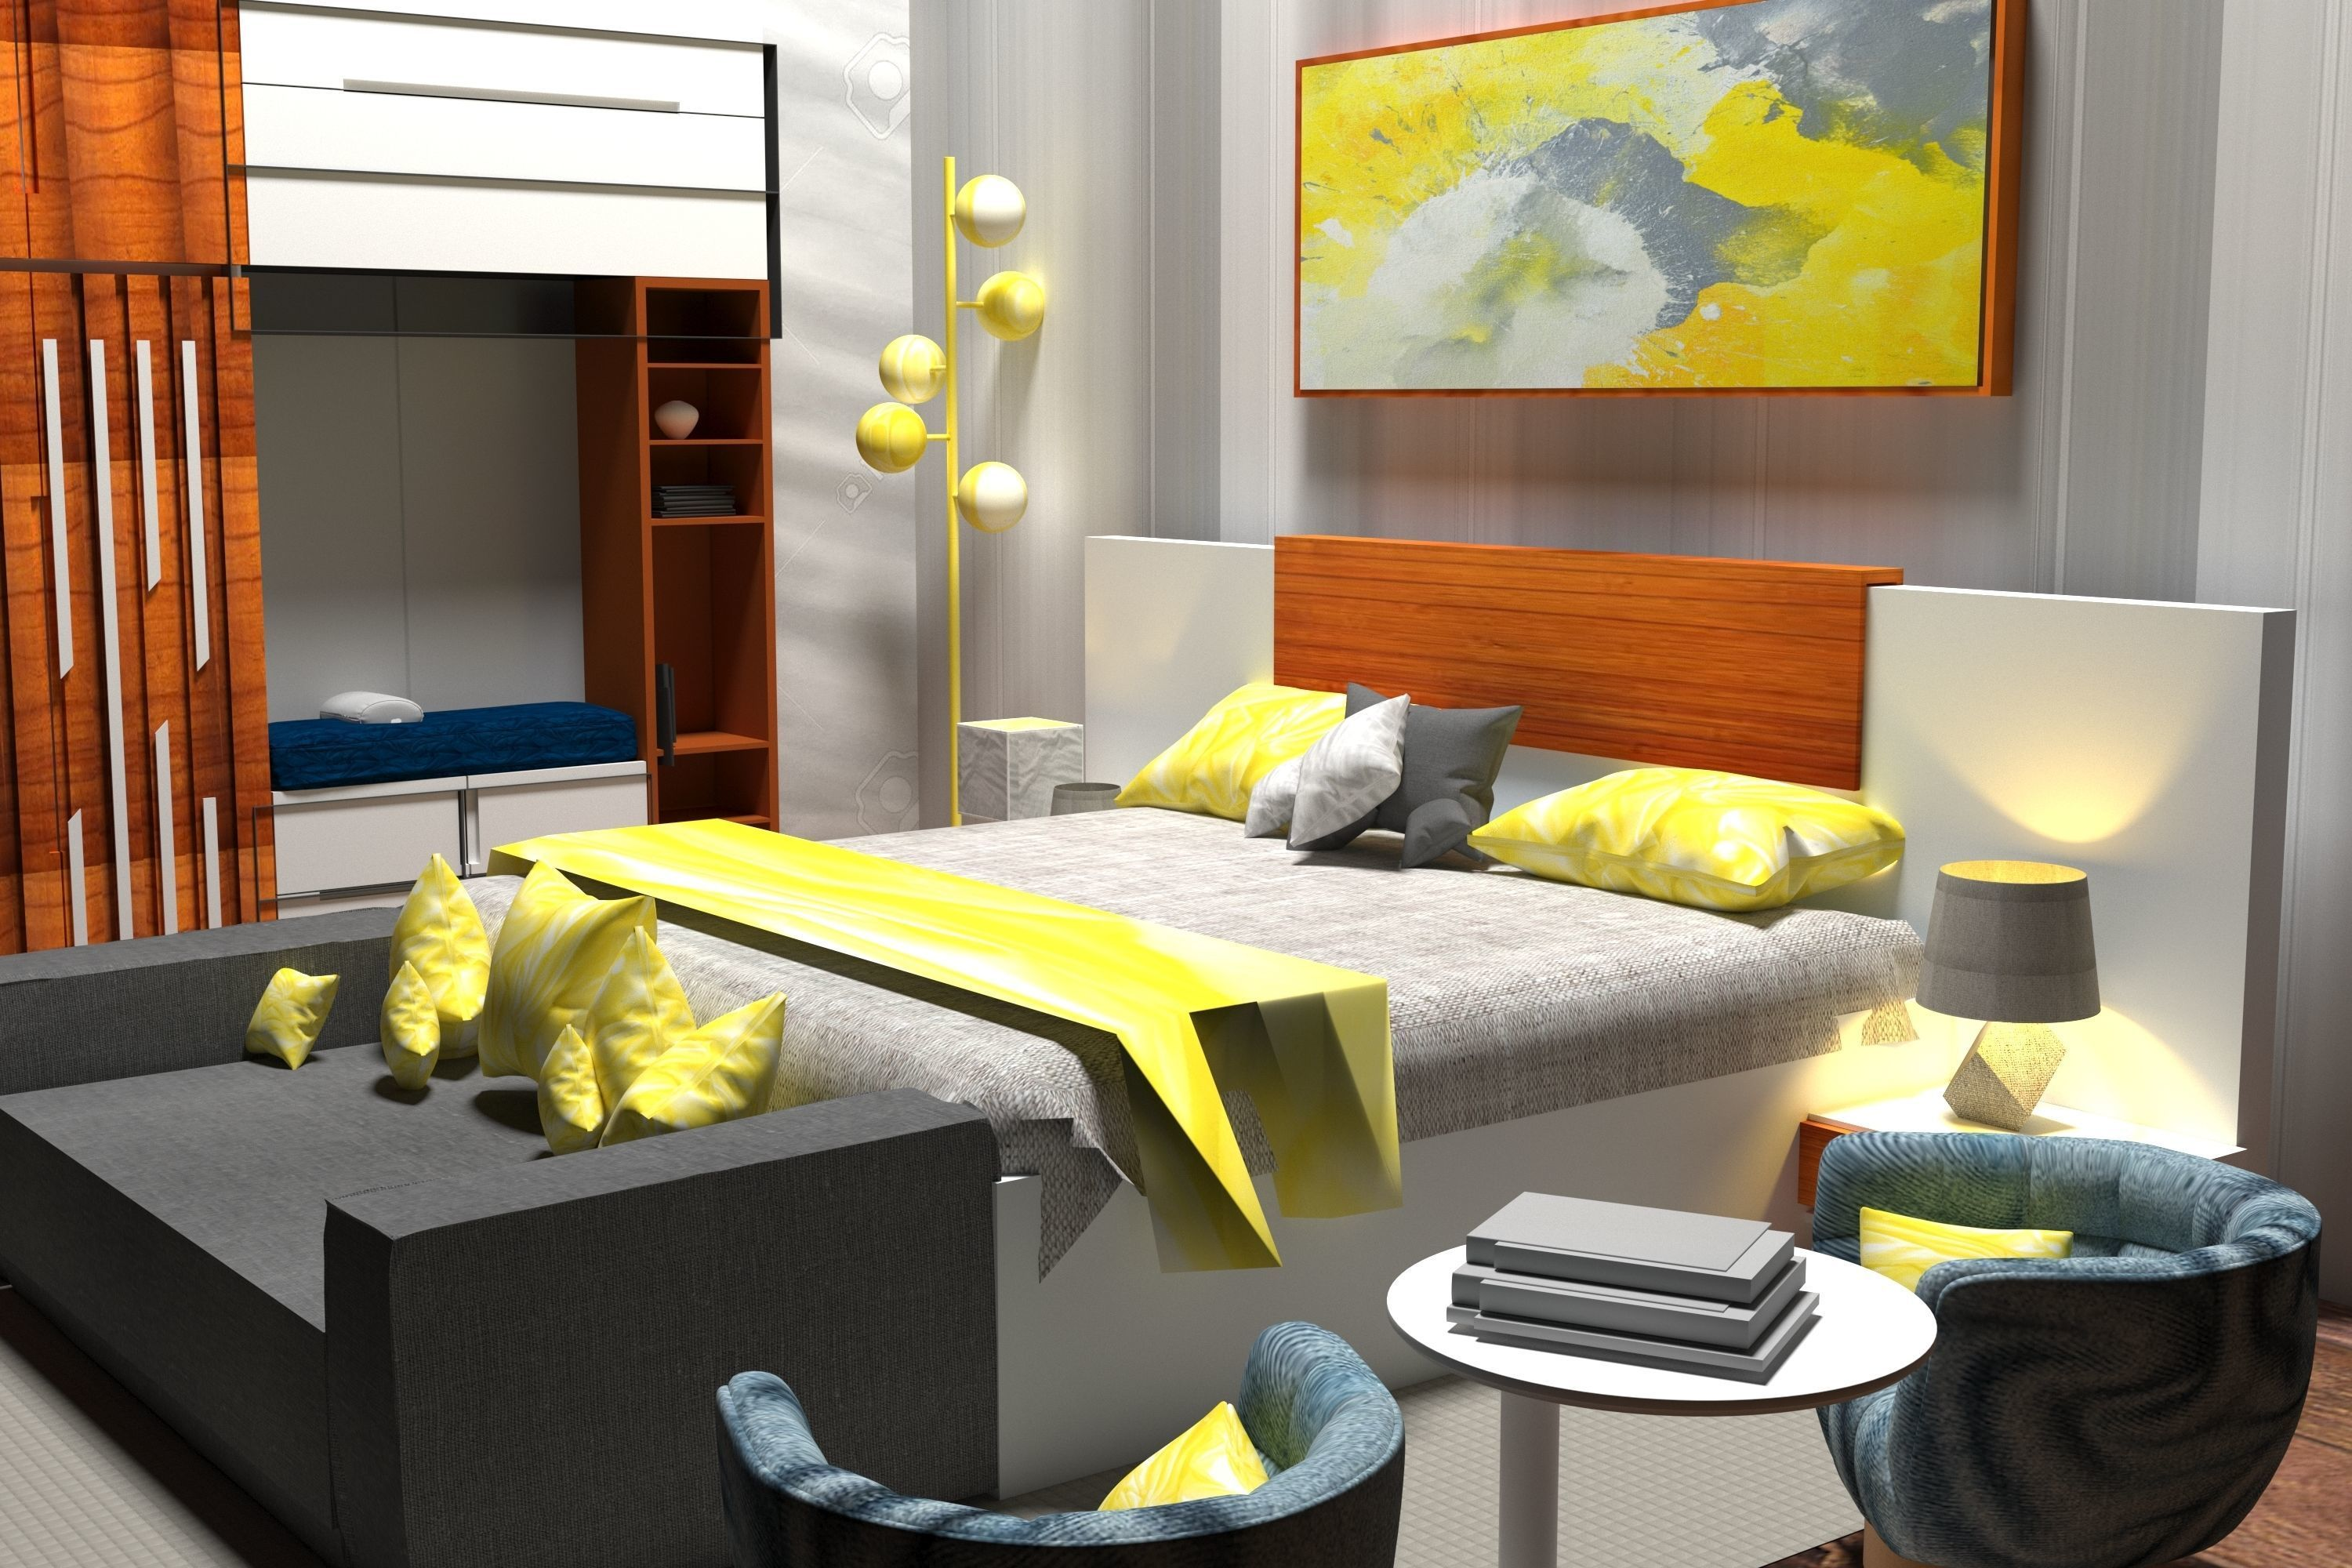 2020 bed room interior design